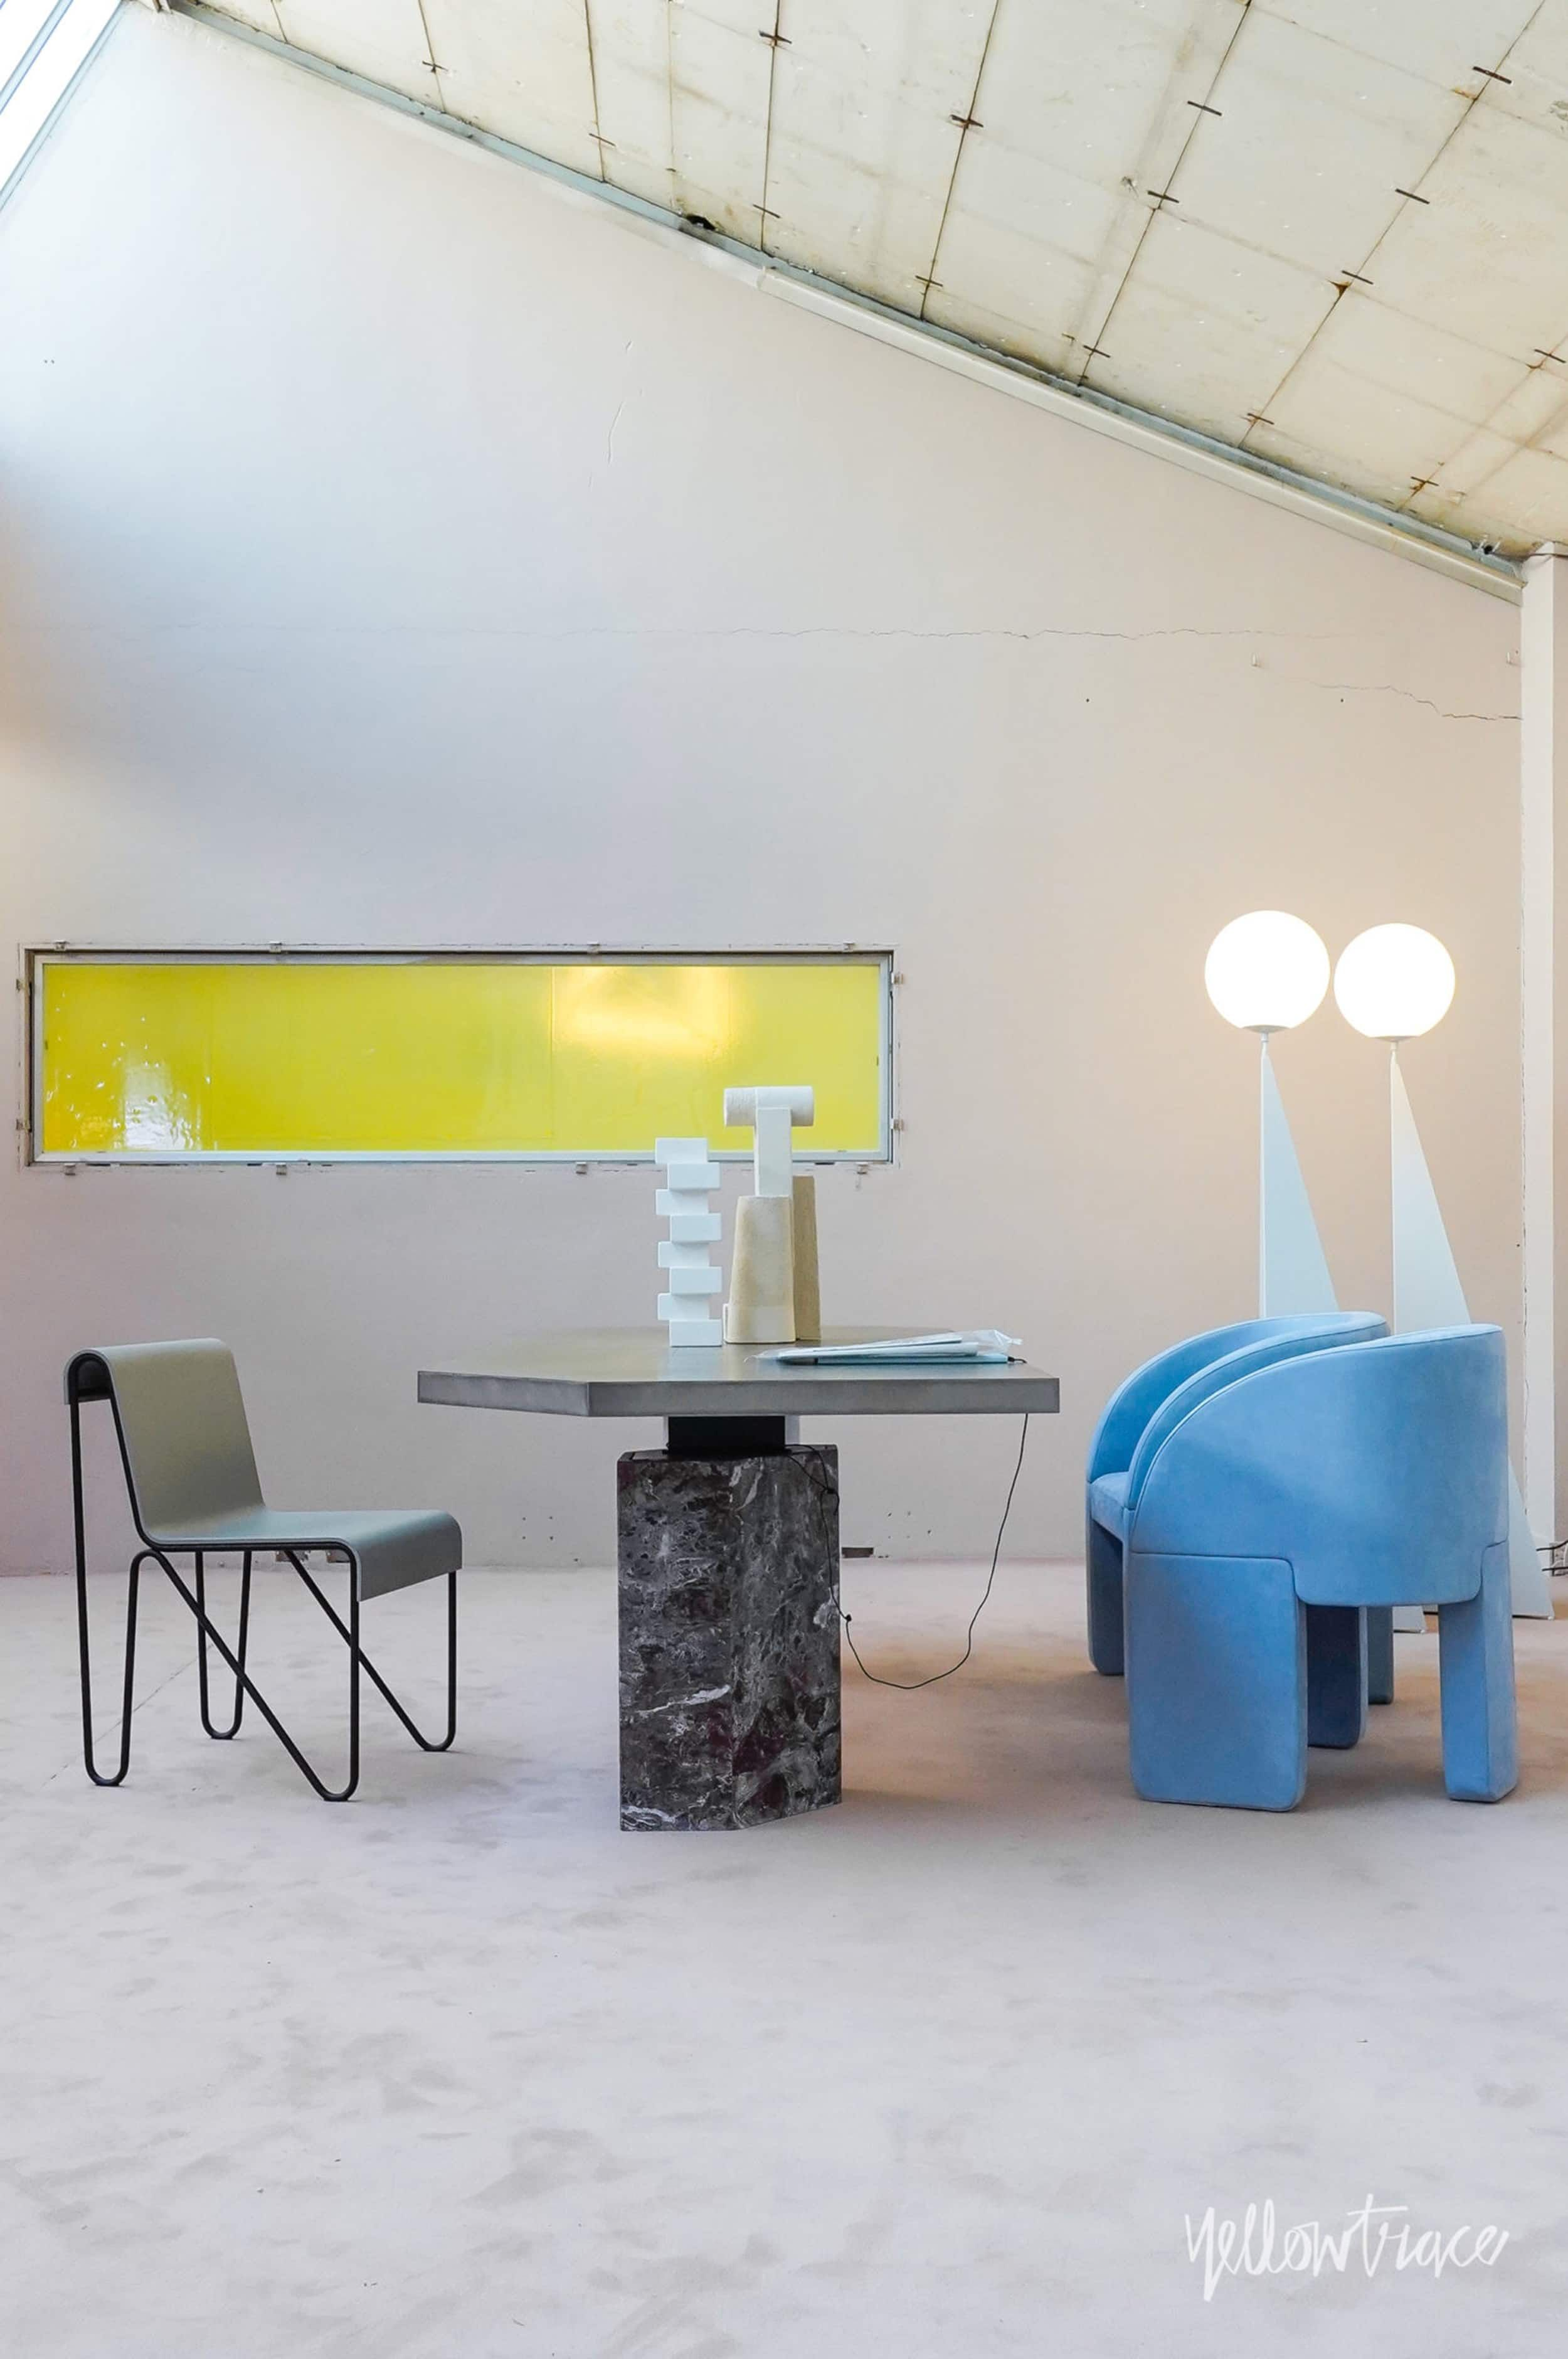 2019 Design Trends Why You Should Know About New Postmodern Postmodernism Design Trends Milan Design Week